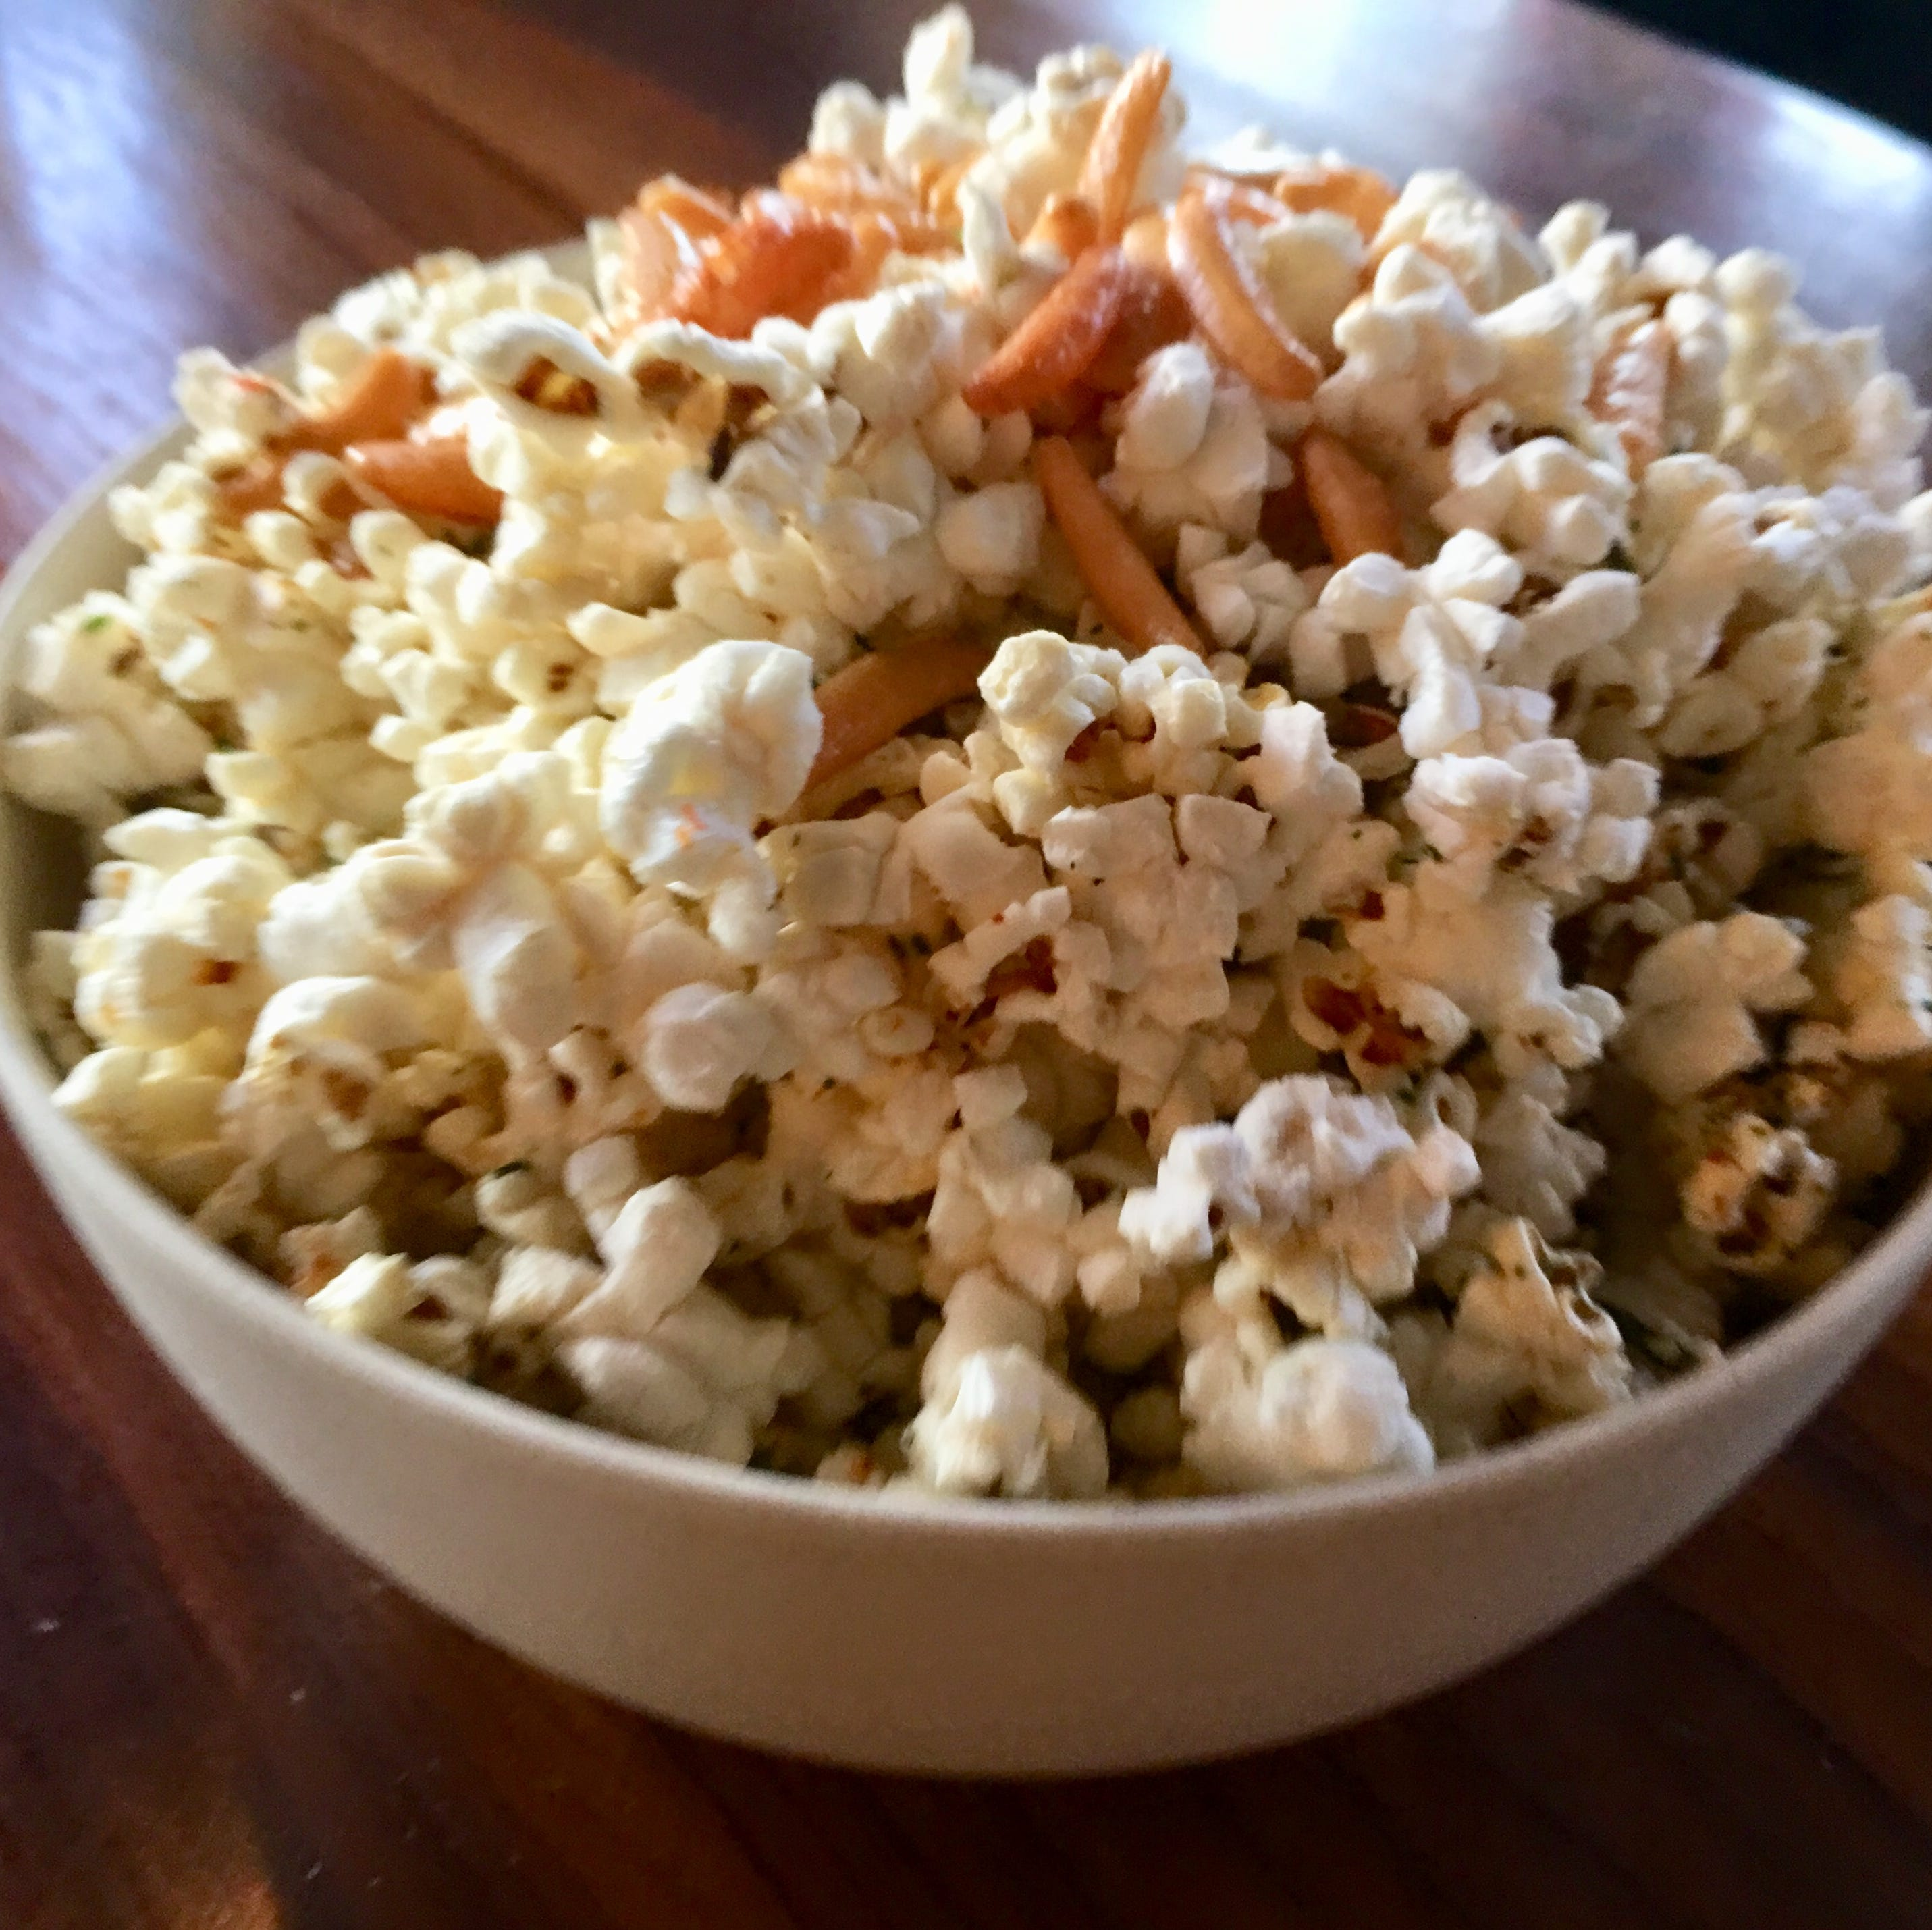 Celebrate National Popcorn Day with spicy hurricane popcorn from Hawaii